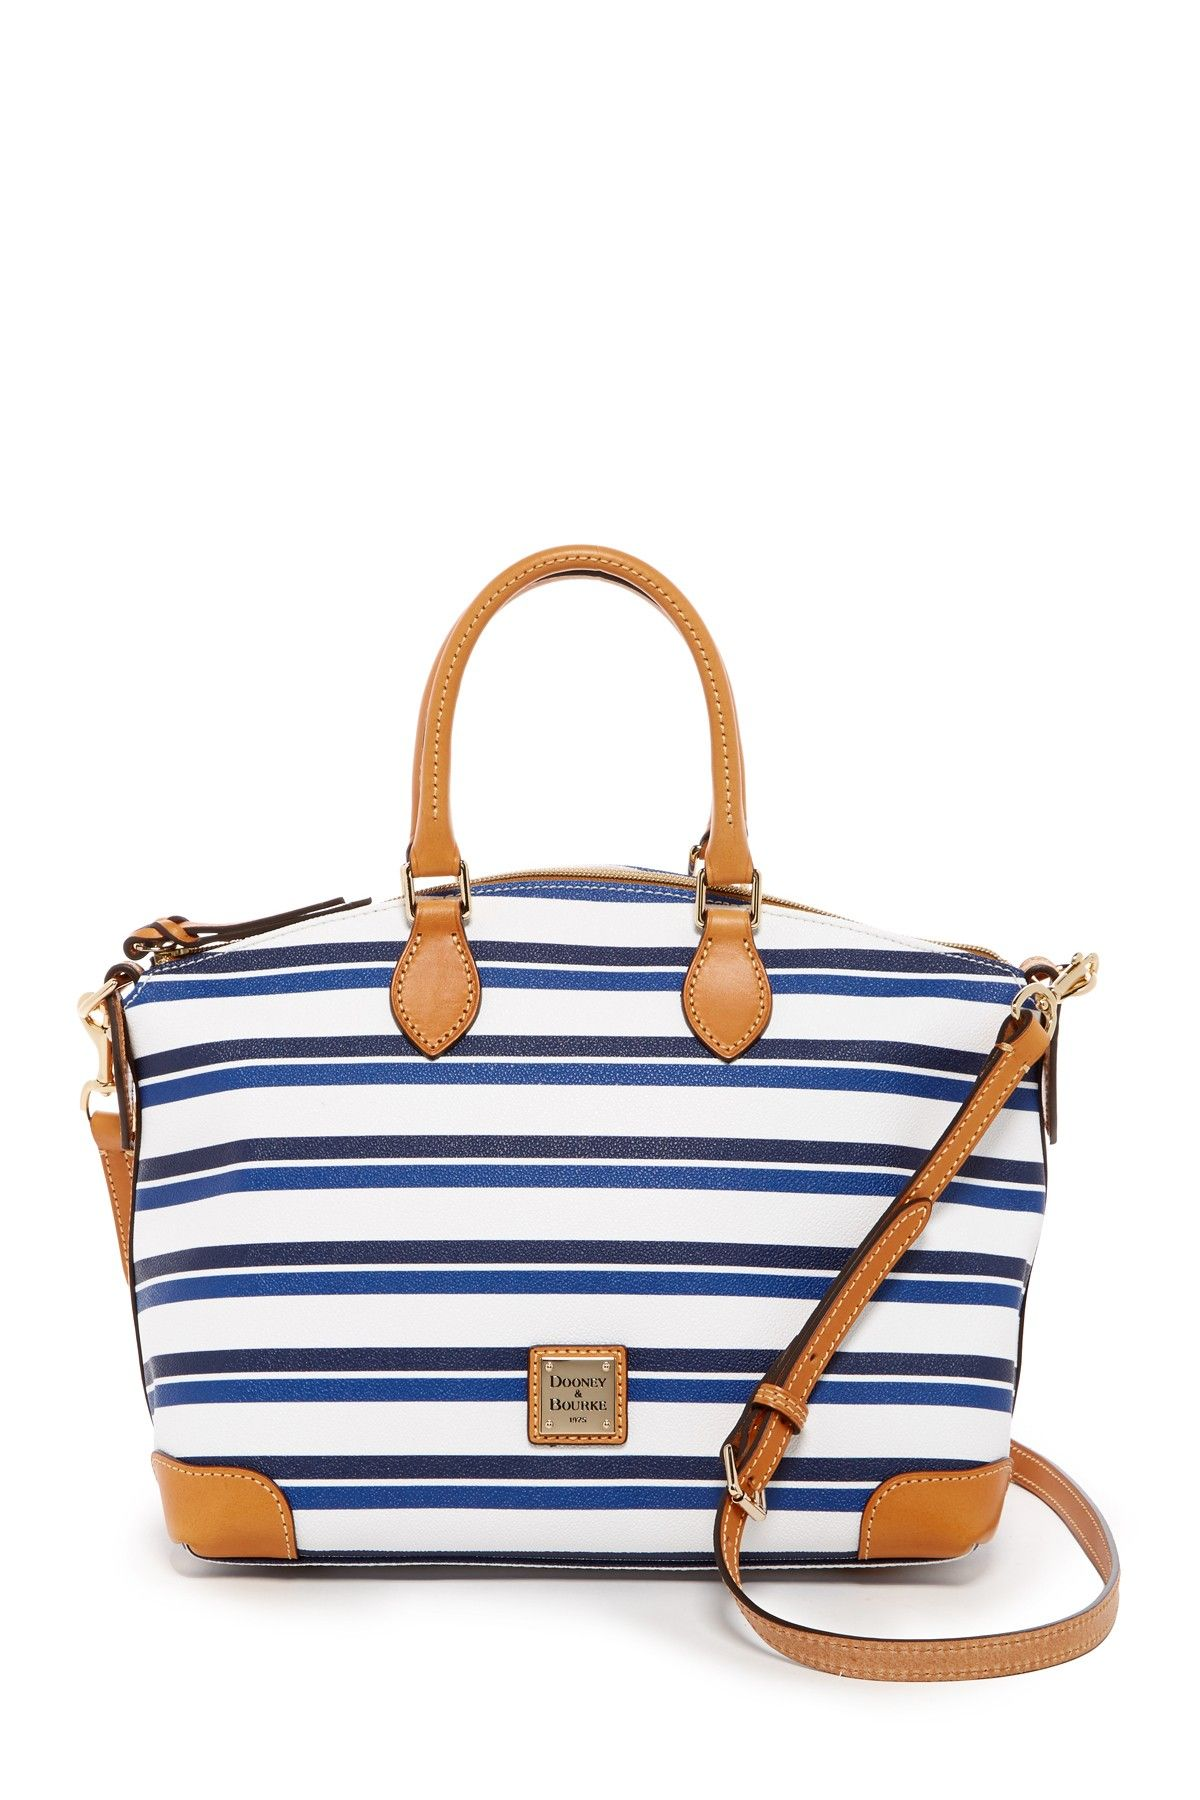 Blue Striped Purse Nordstrom Rack Dooney Bourke Affiliate Pin